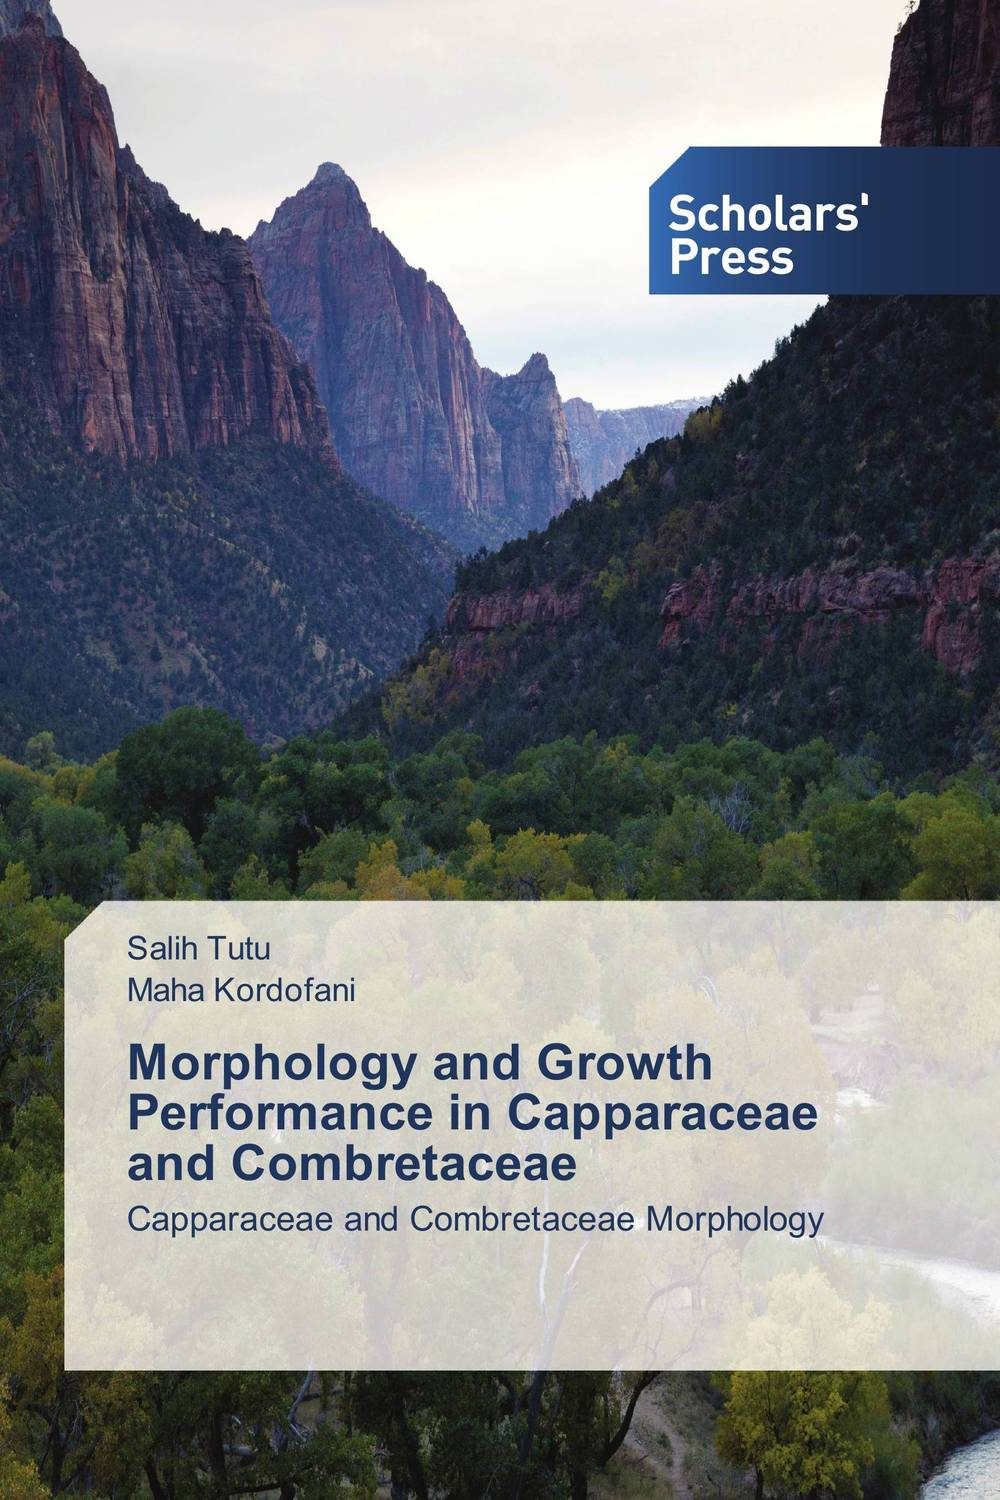 Morphology and Growth Performance in Capparaceae and Combretaceae gnanasekar s and chandrasekhar c n carbon sequestration in multipurpose tree species at seedling stage